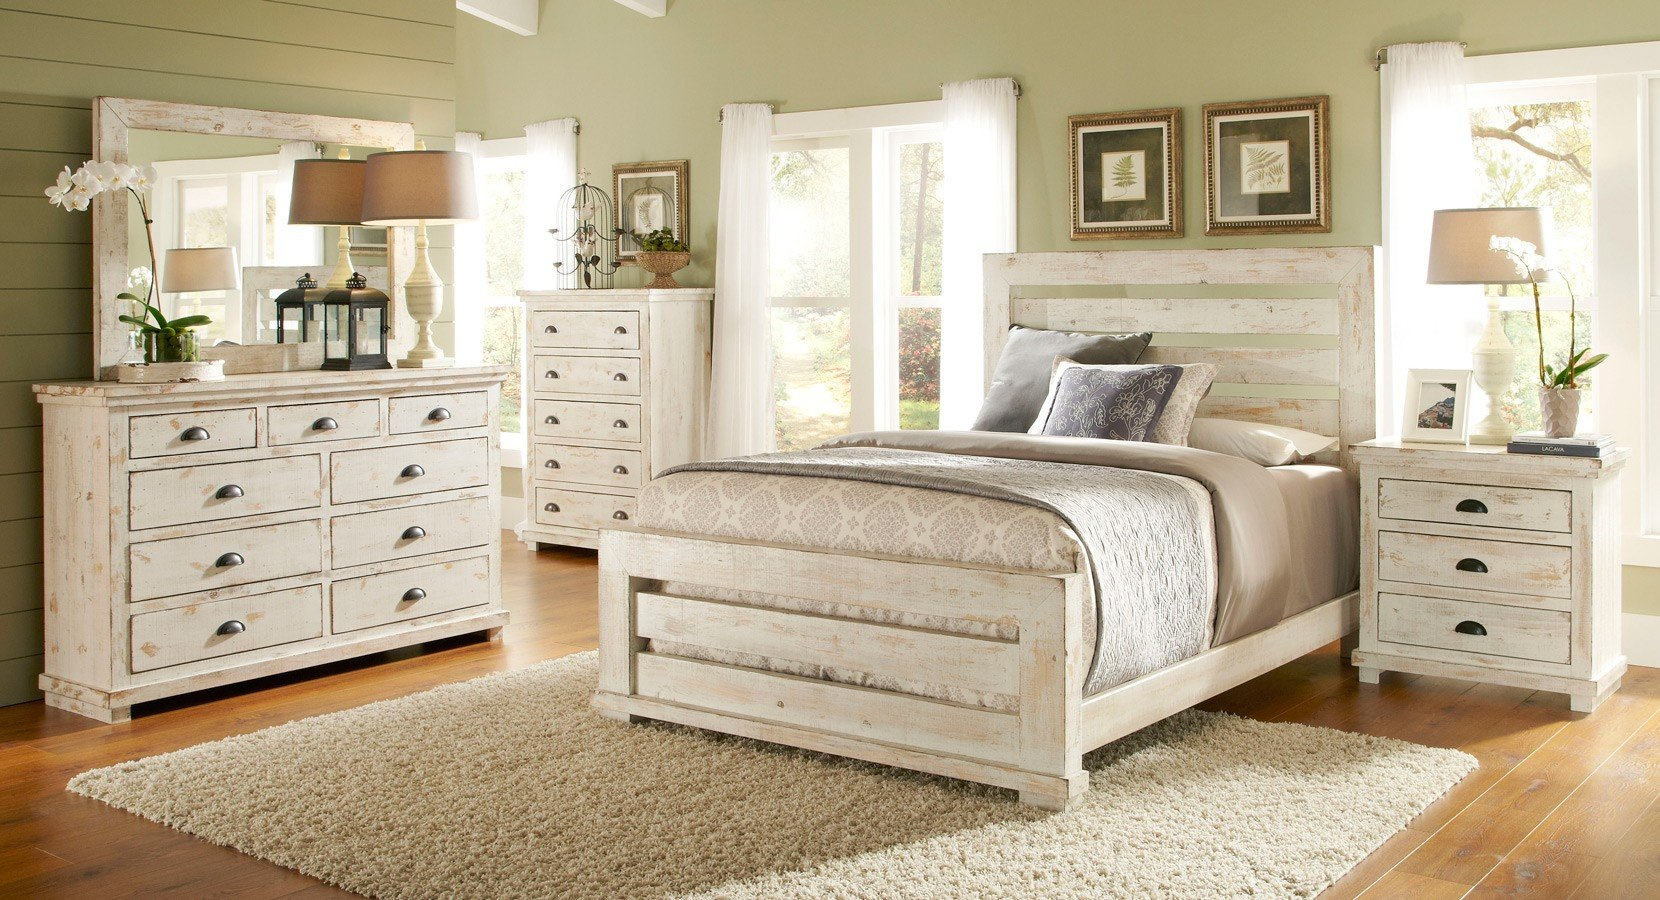 Willow slat bedroom set distressed white progressive - White vintage bedroom furniture sets ...